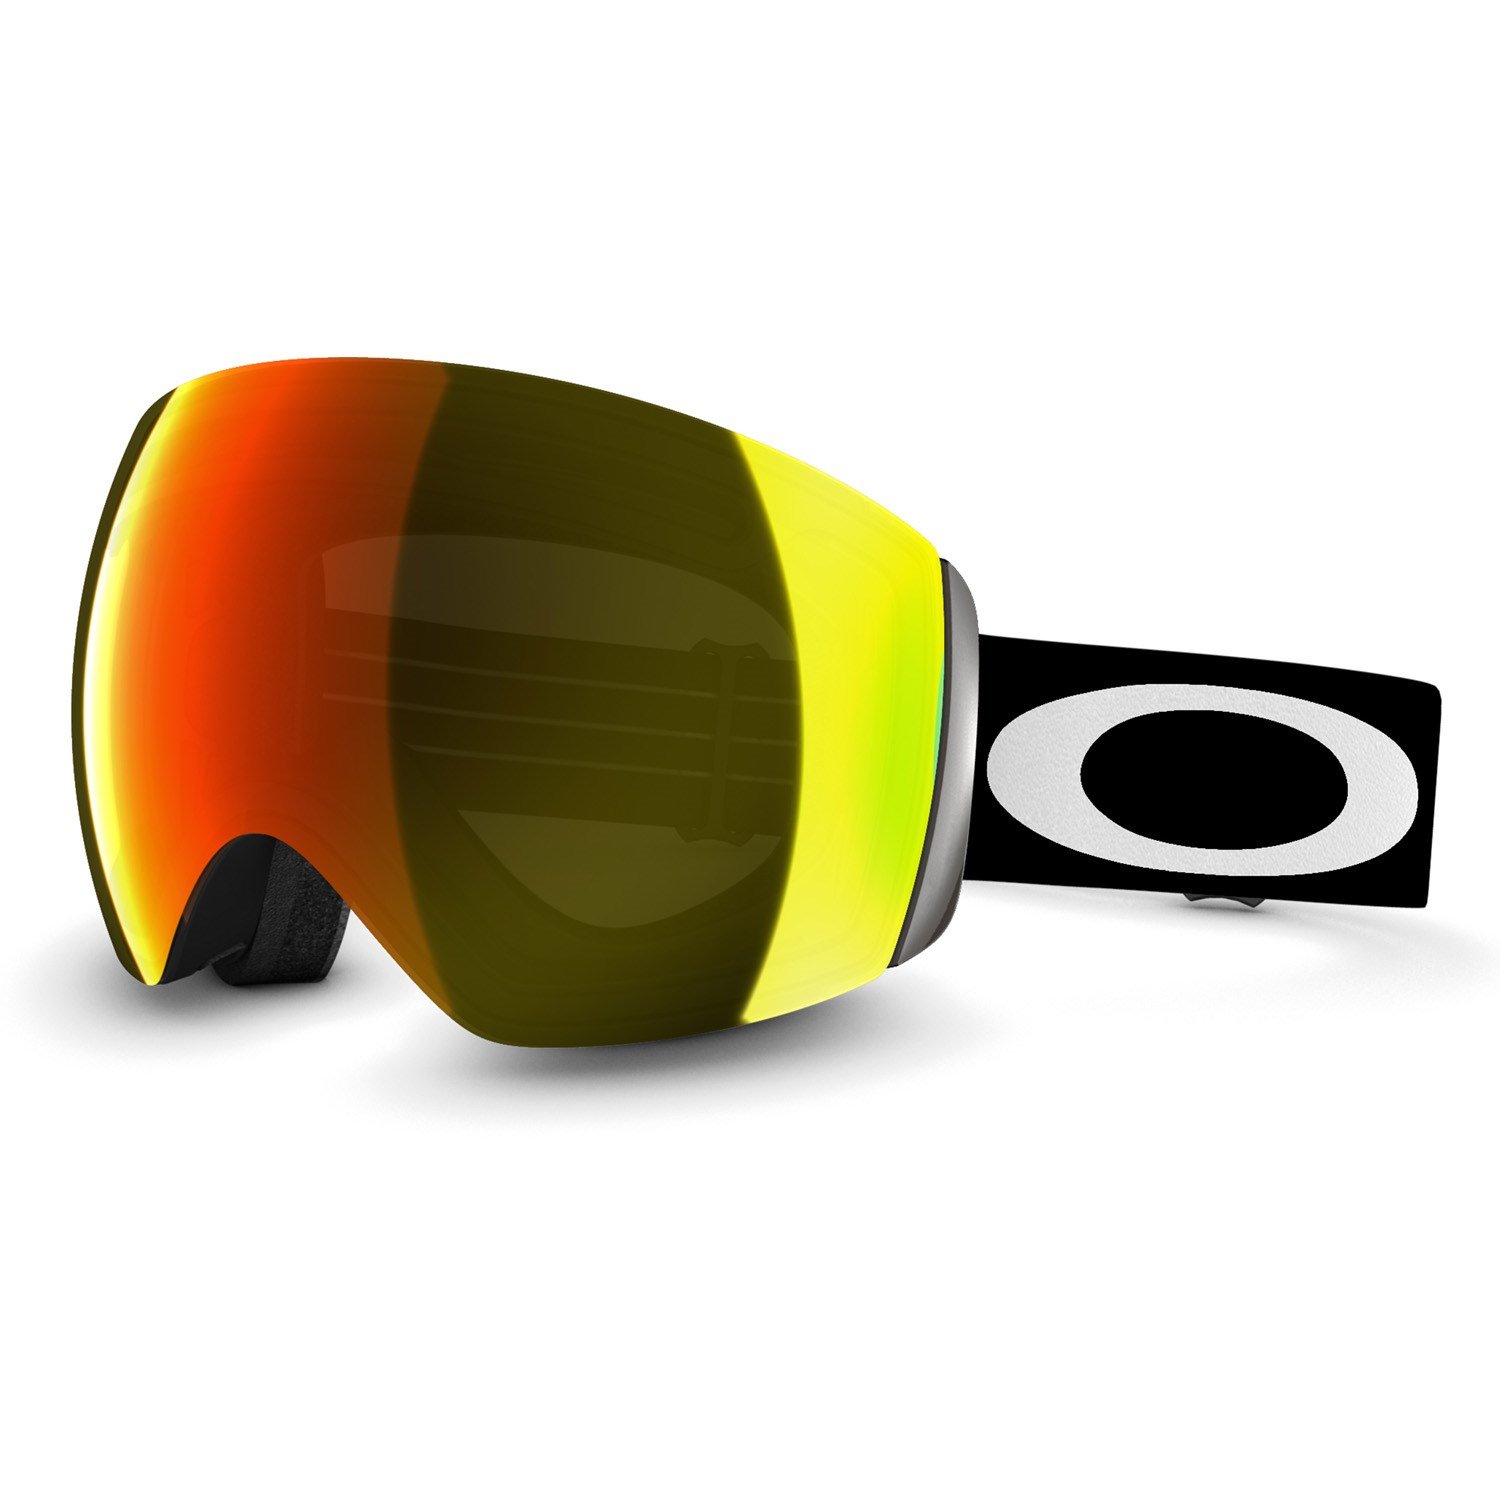 new oakley goggles  Oakley Flight Deck Goggles